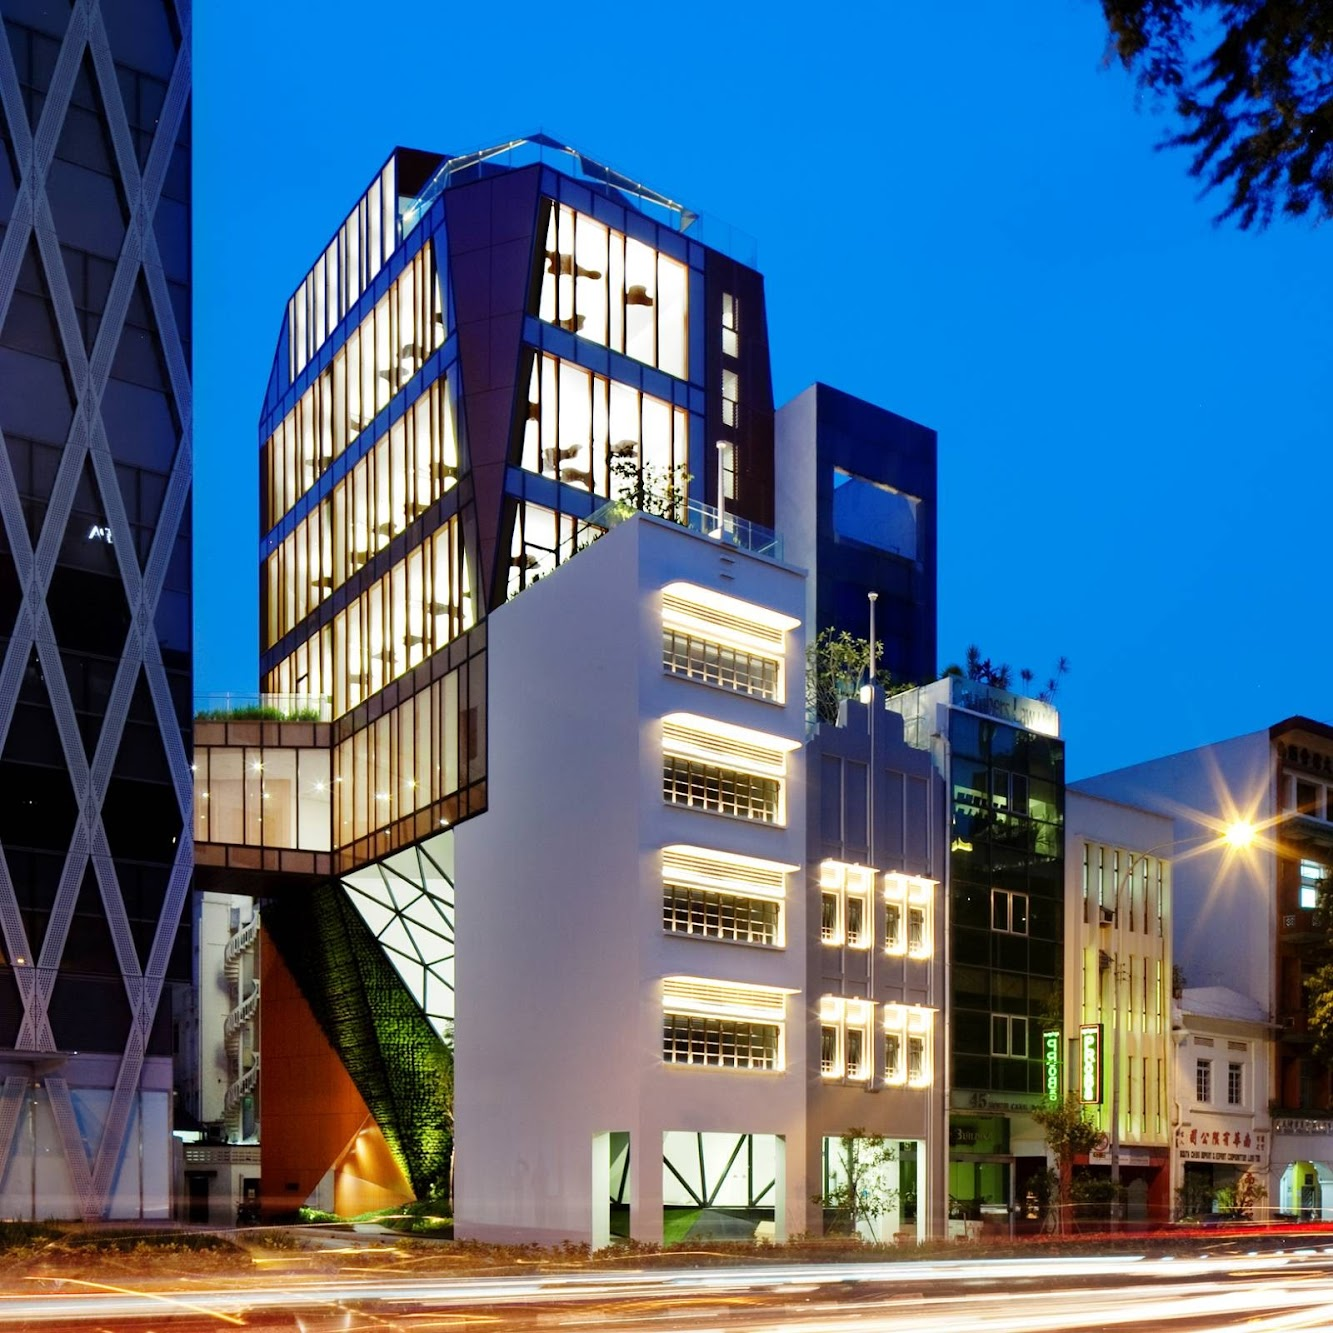 48 North Canal Road, Singapore: 48 North Canal Road by Woha